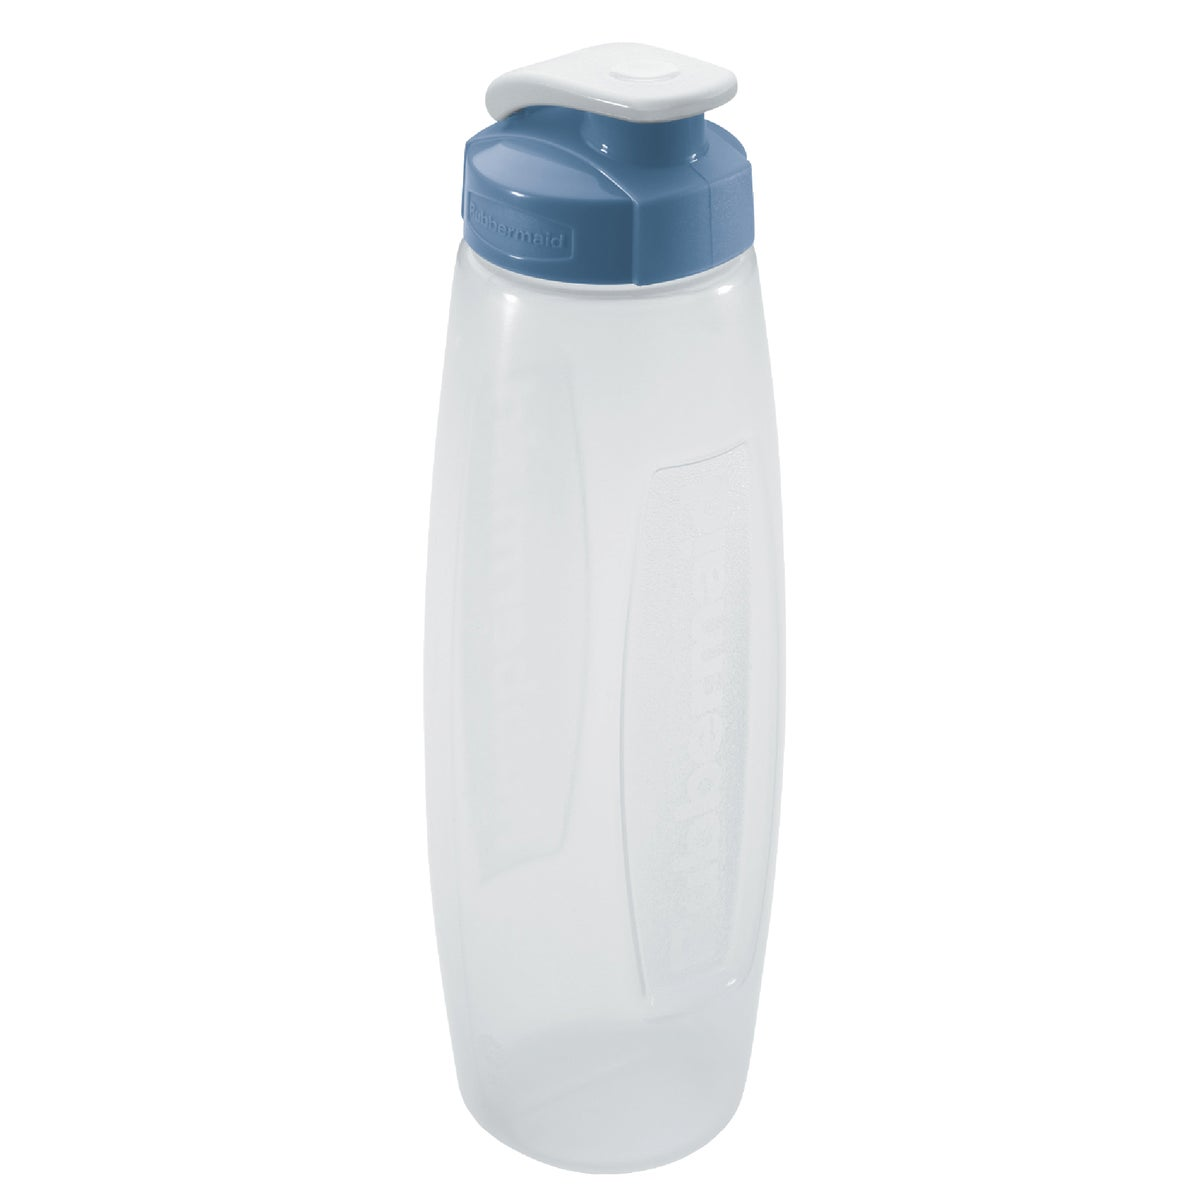 32OZ CHUG SPORT BOTTLE - FG3163RDEDAYI by Rubbermaid Home